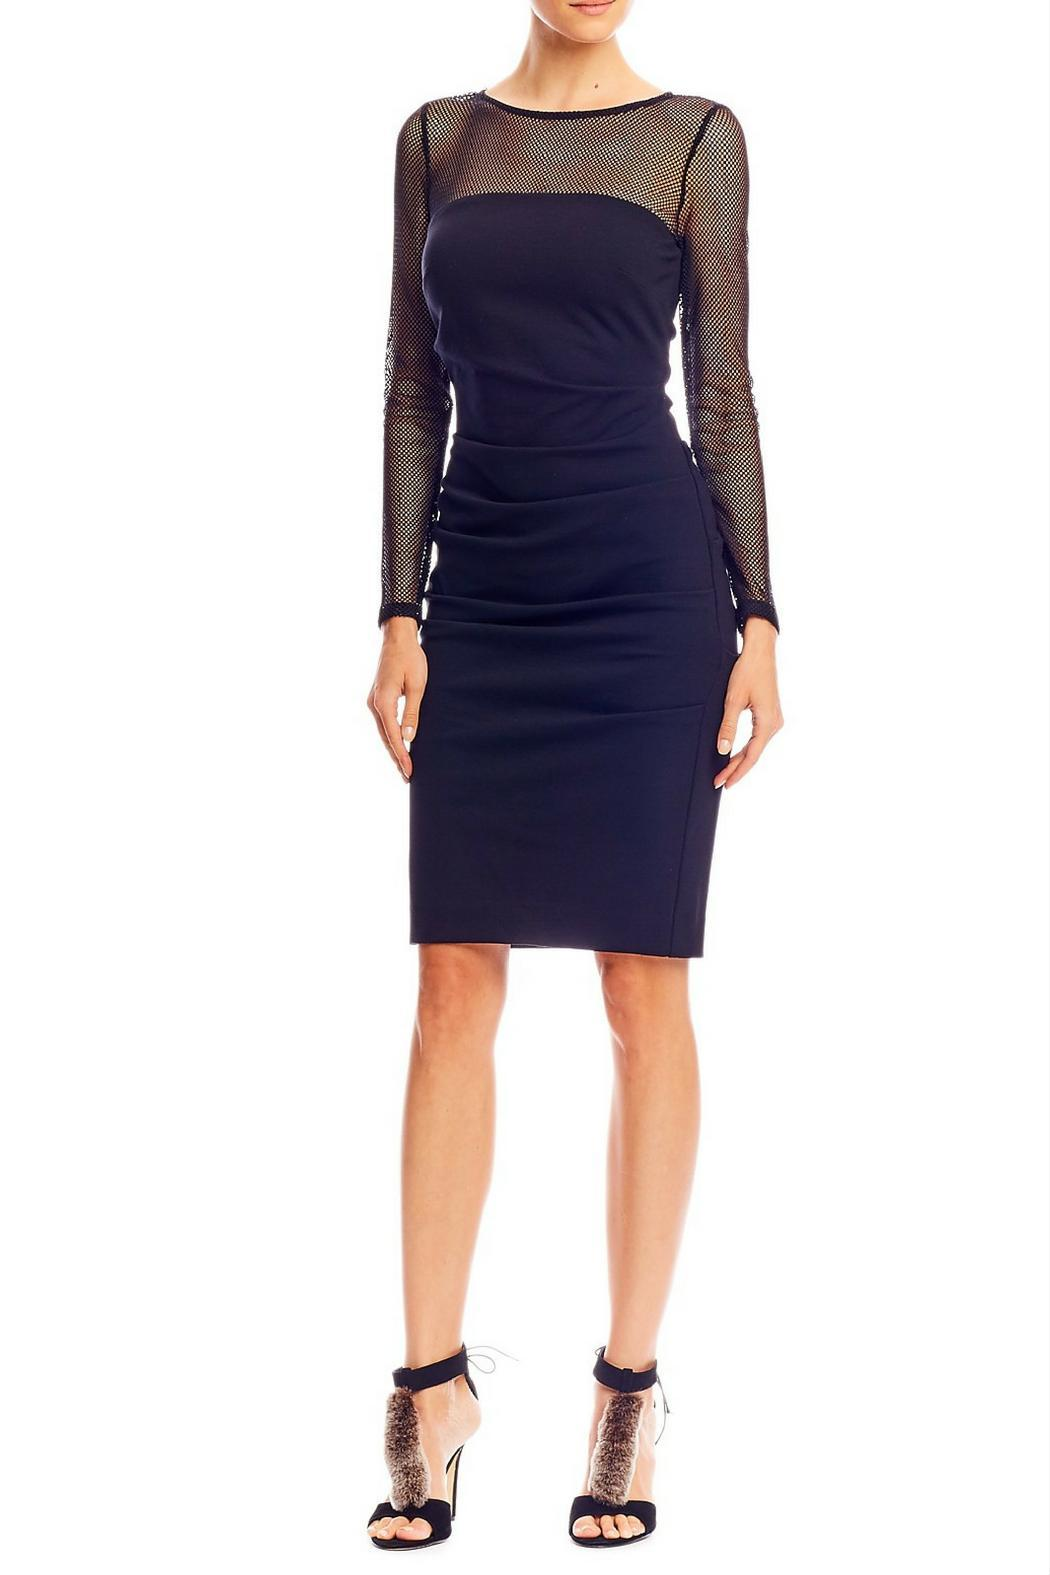 Assymetric Sleeve Dresses On Sale Nicole Miller